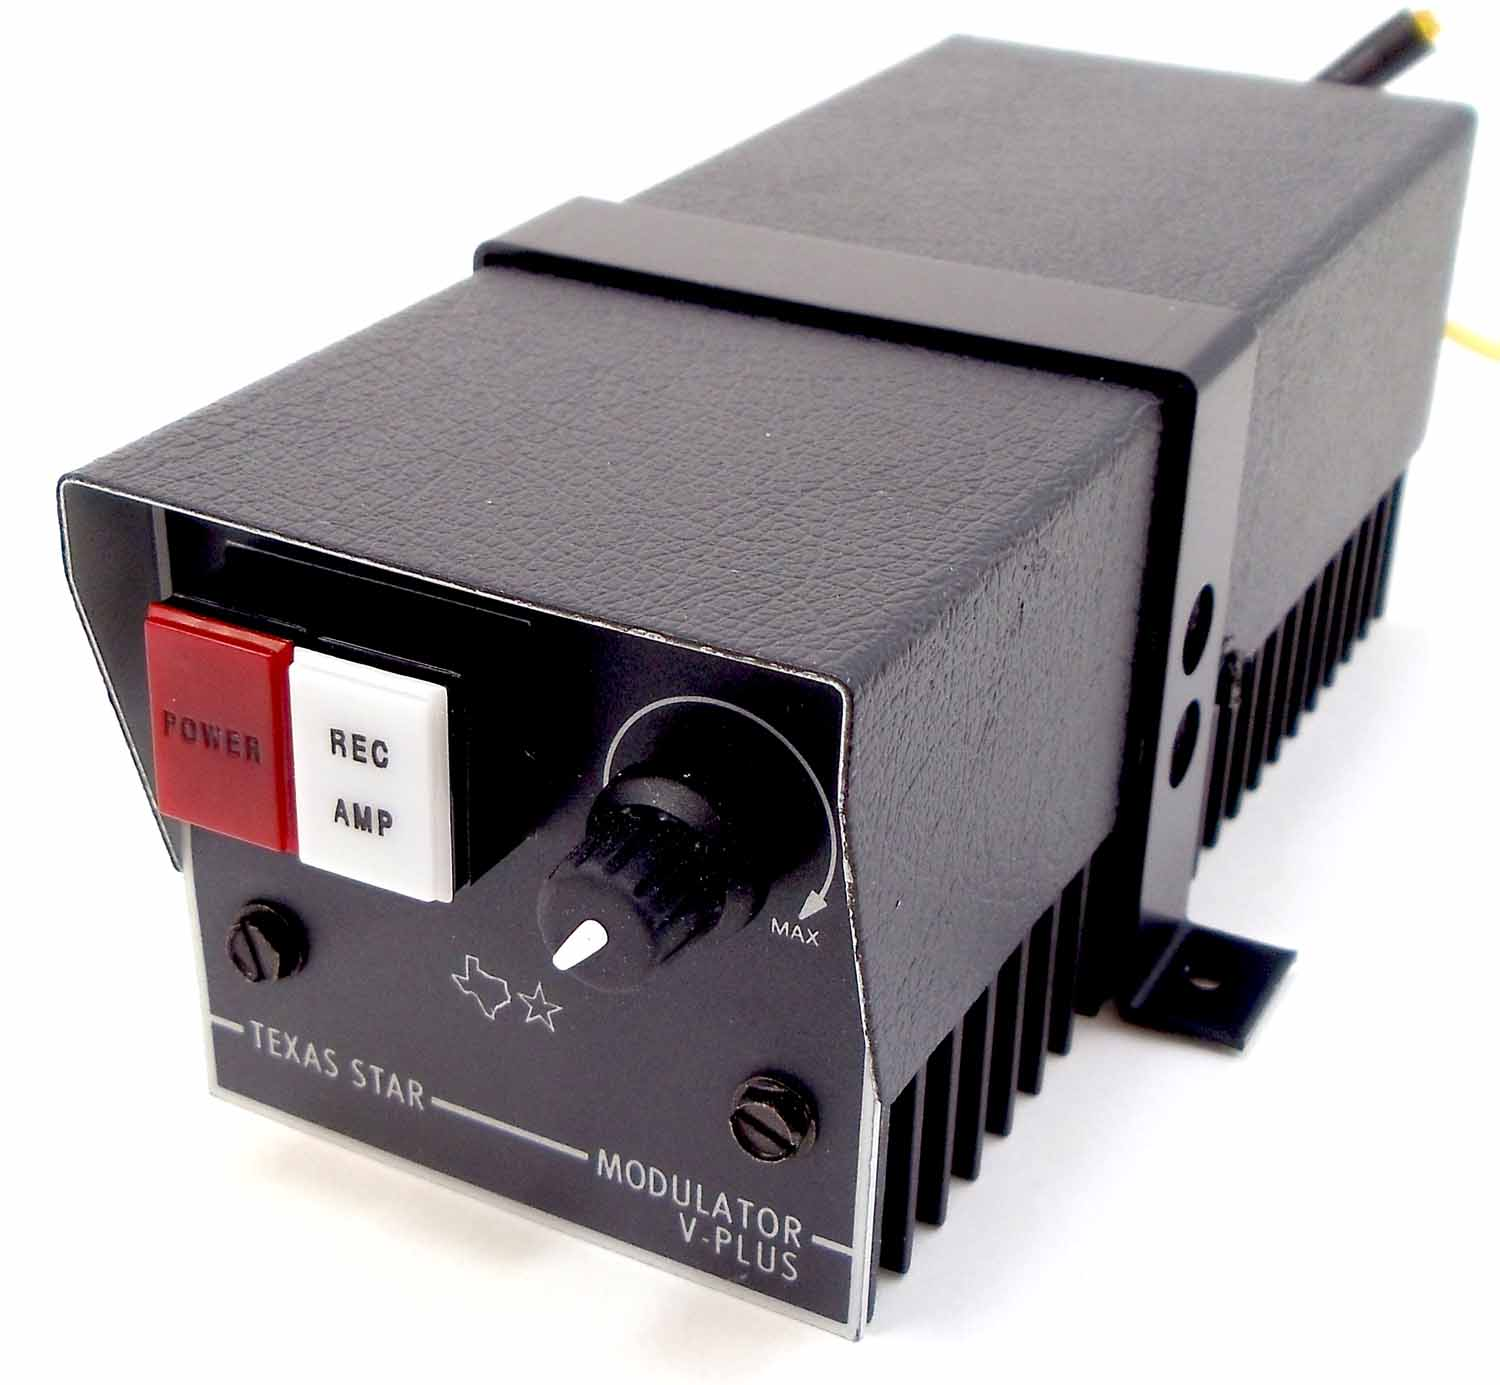 MODV - 10 Meter Galaxy Am Modulator with Variable Power